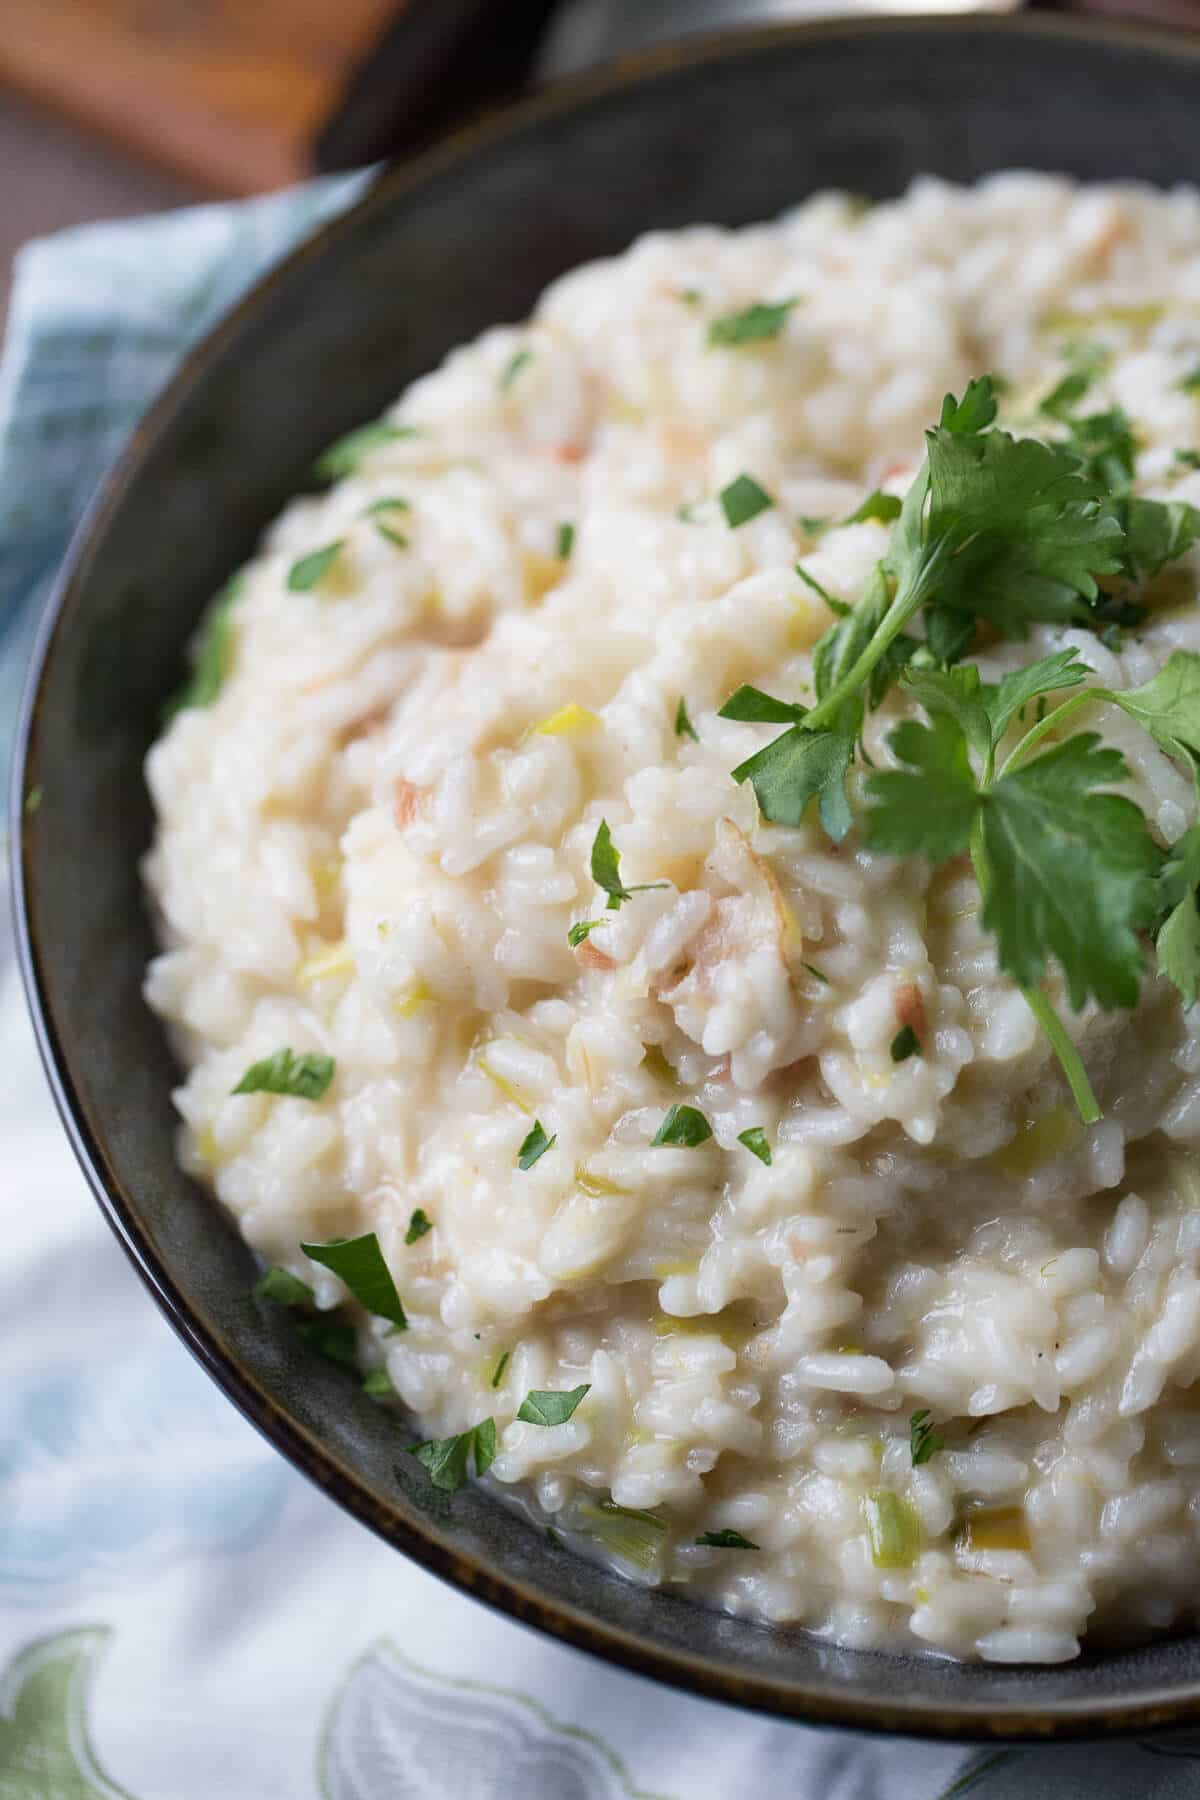 This bacon risotto is so easy to make and it tastes incredible! You will turn to make this side dish over and over again!